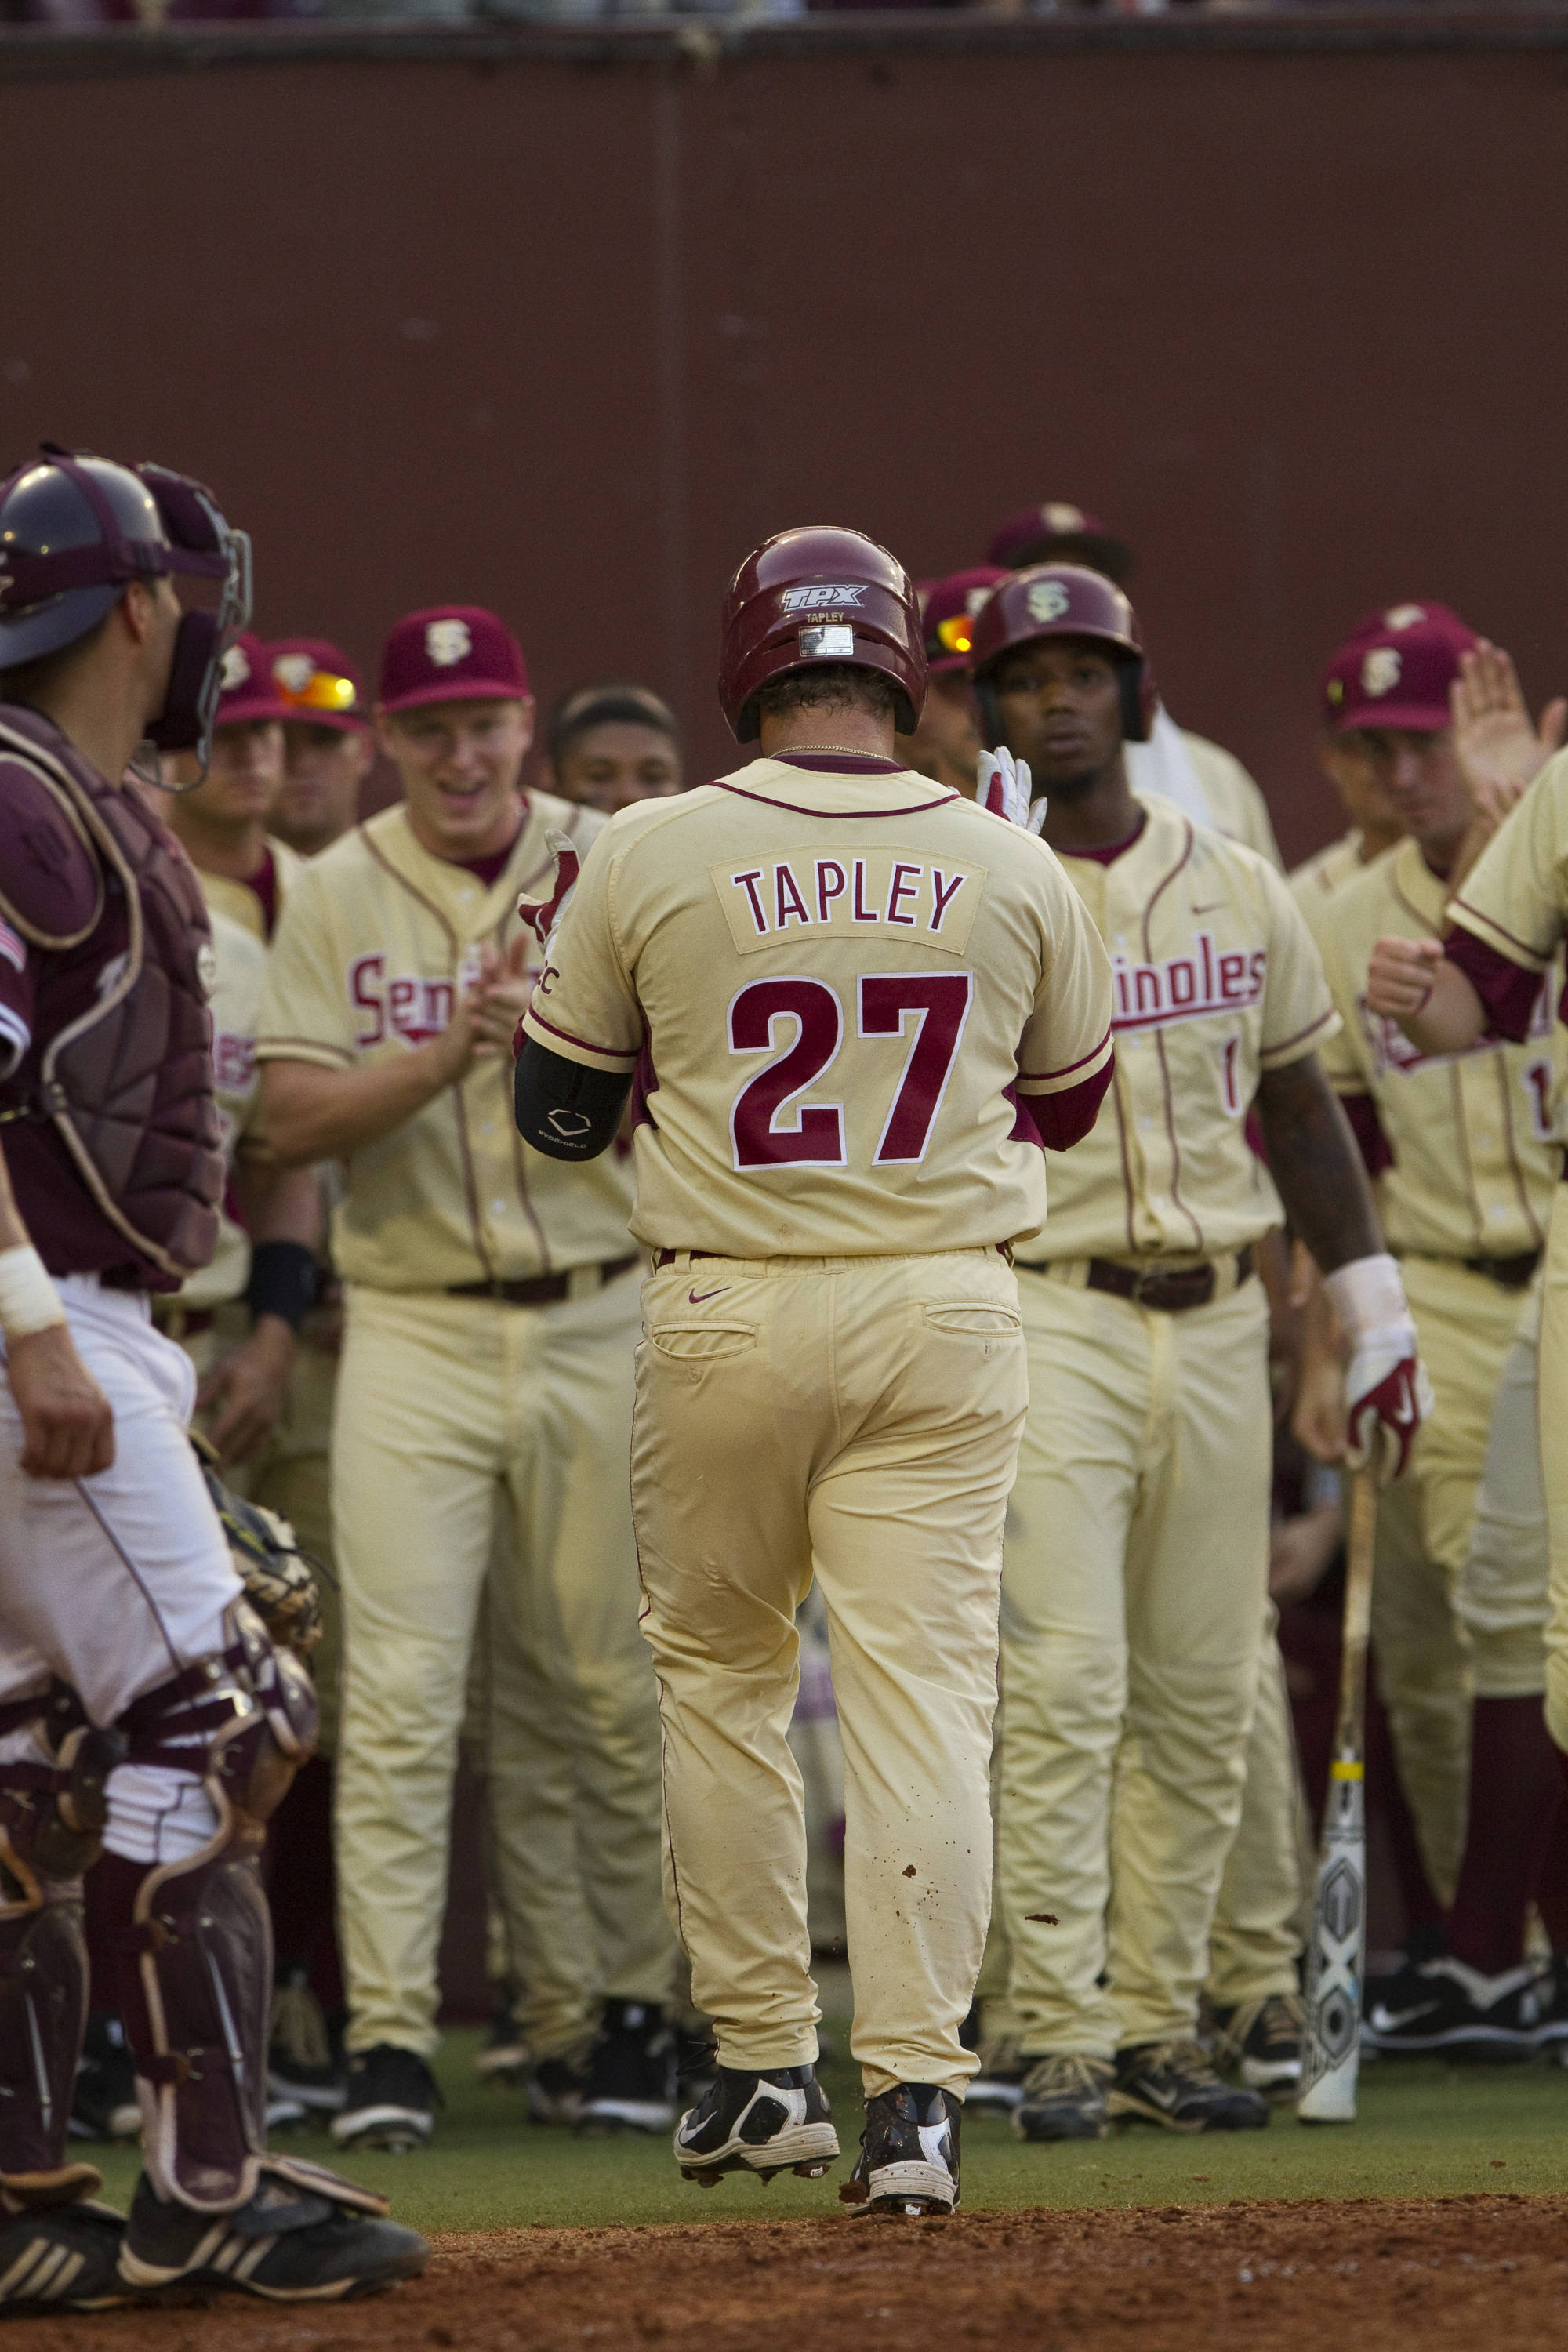 Stuart Tapley (27) is congratulated by teammates after scoring a run.